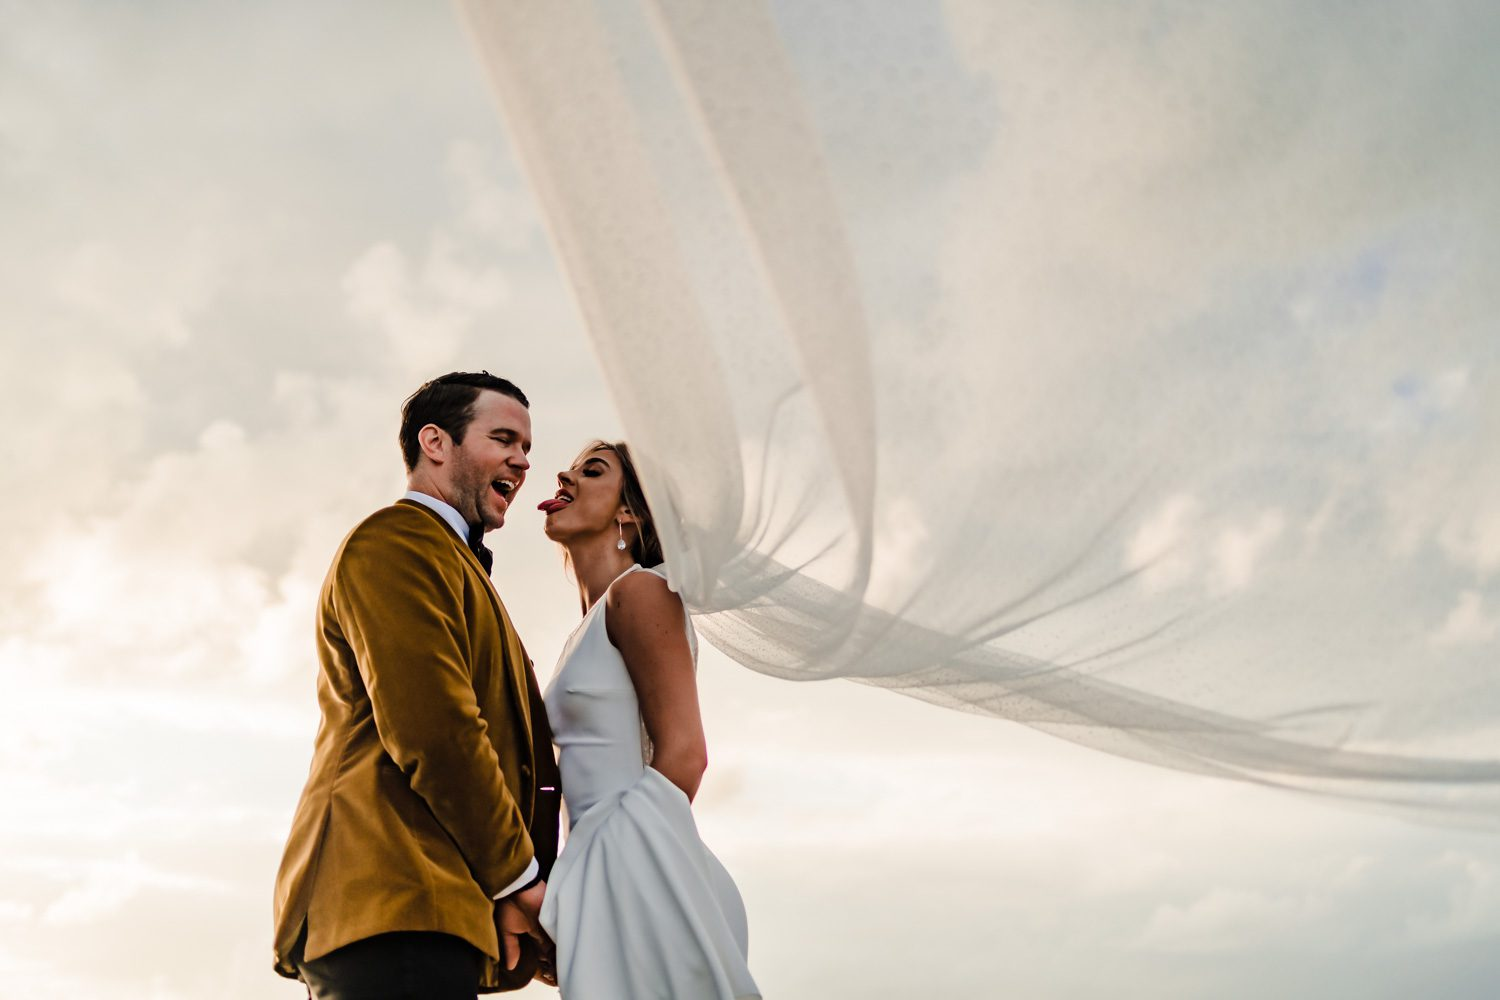 Couple With Brides Veil Flowing In Wind During Wedding Day